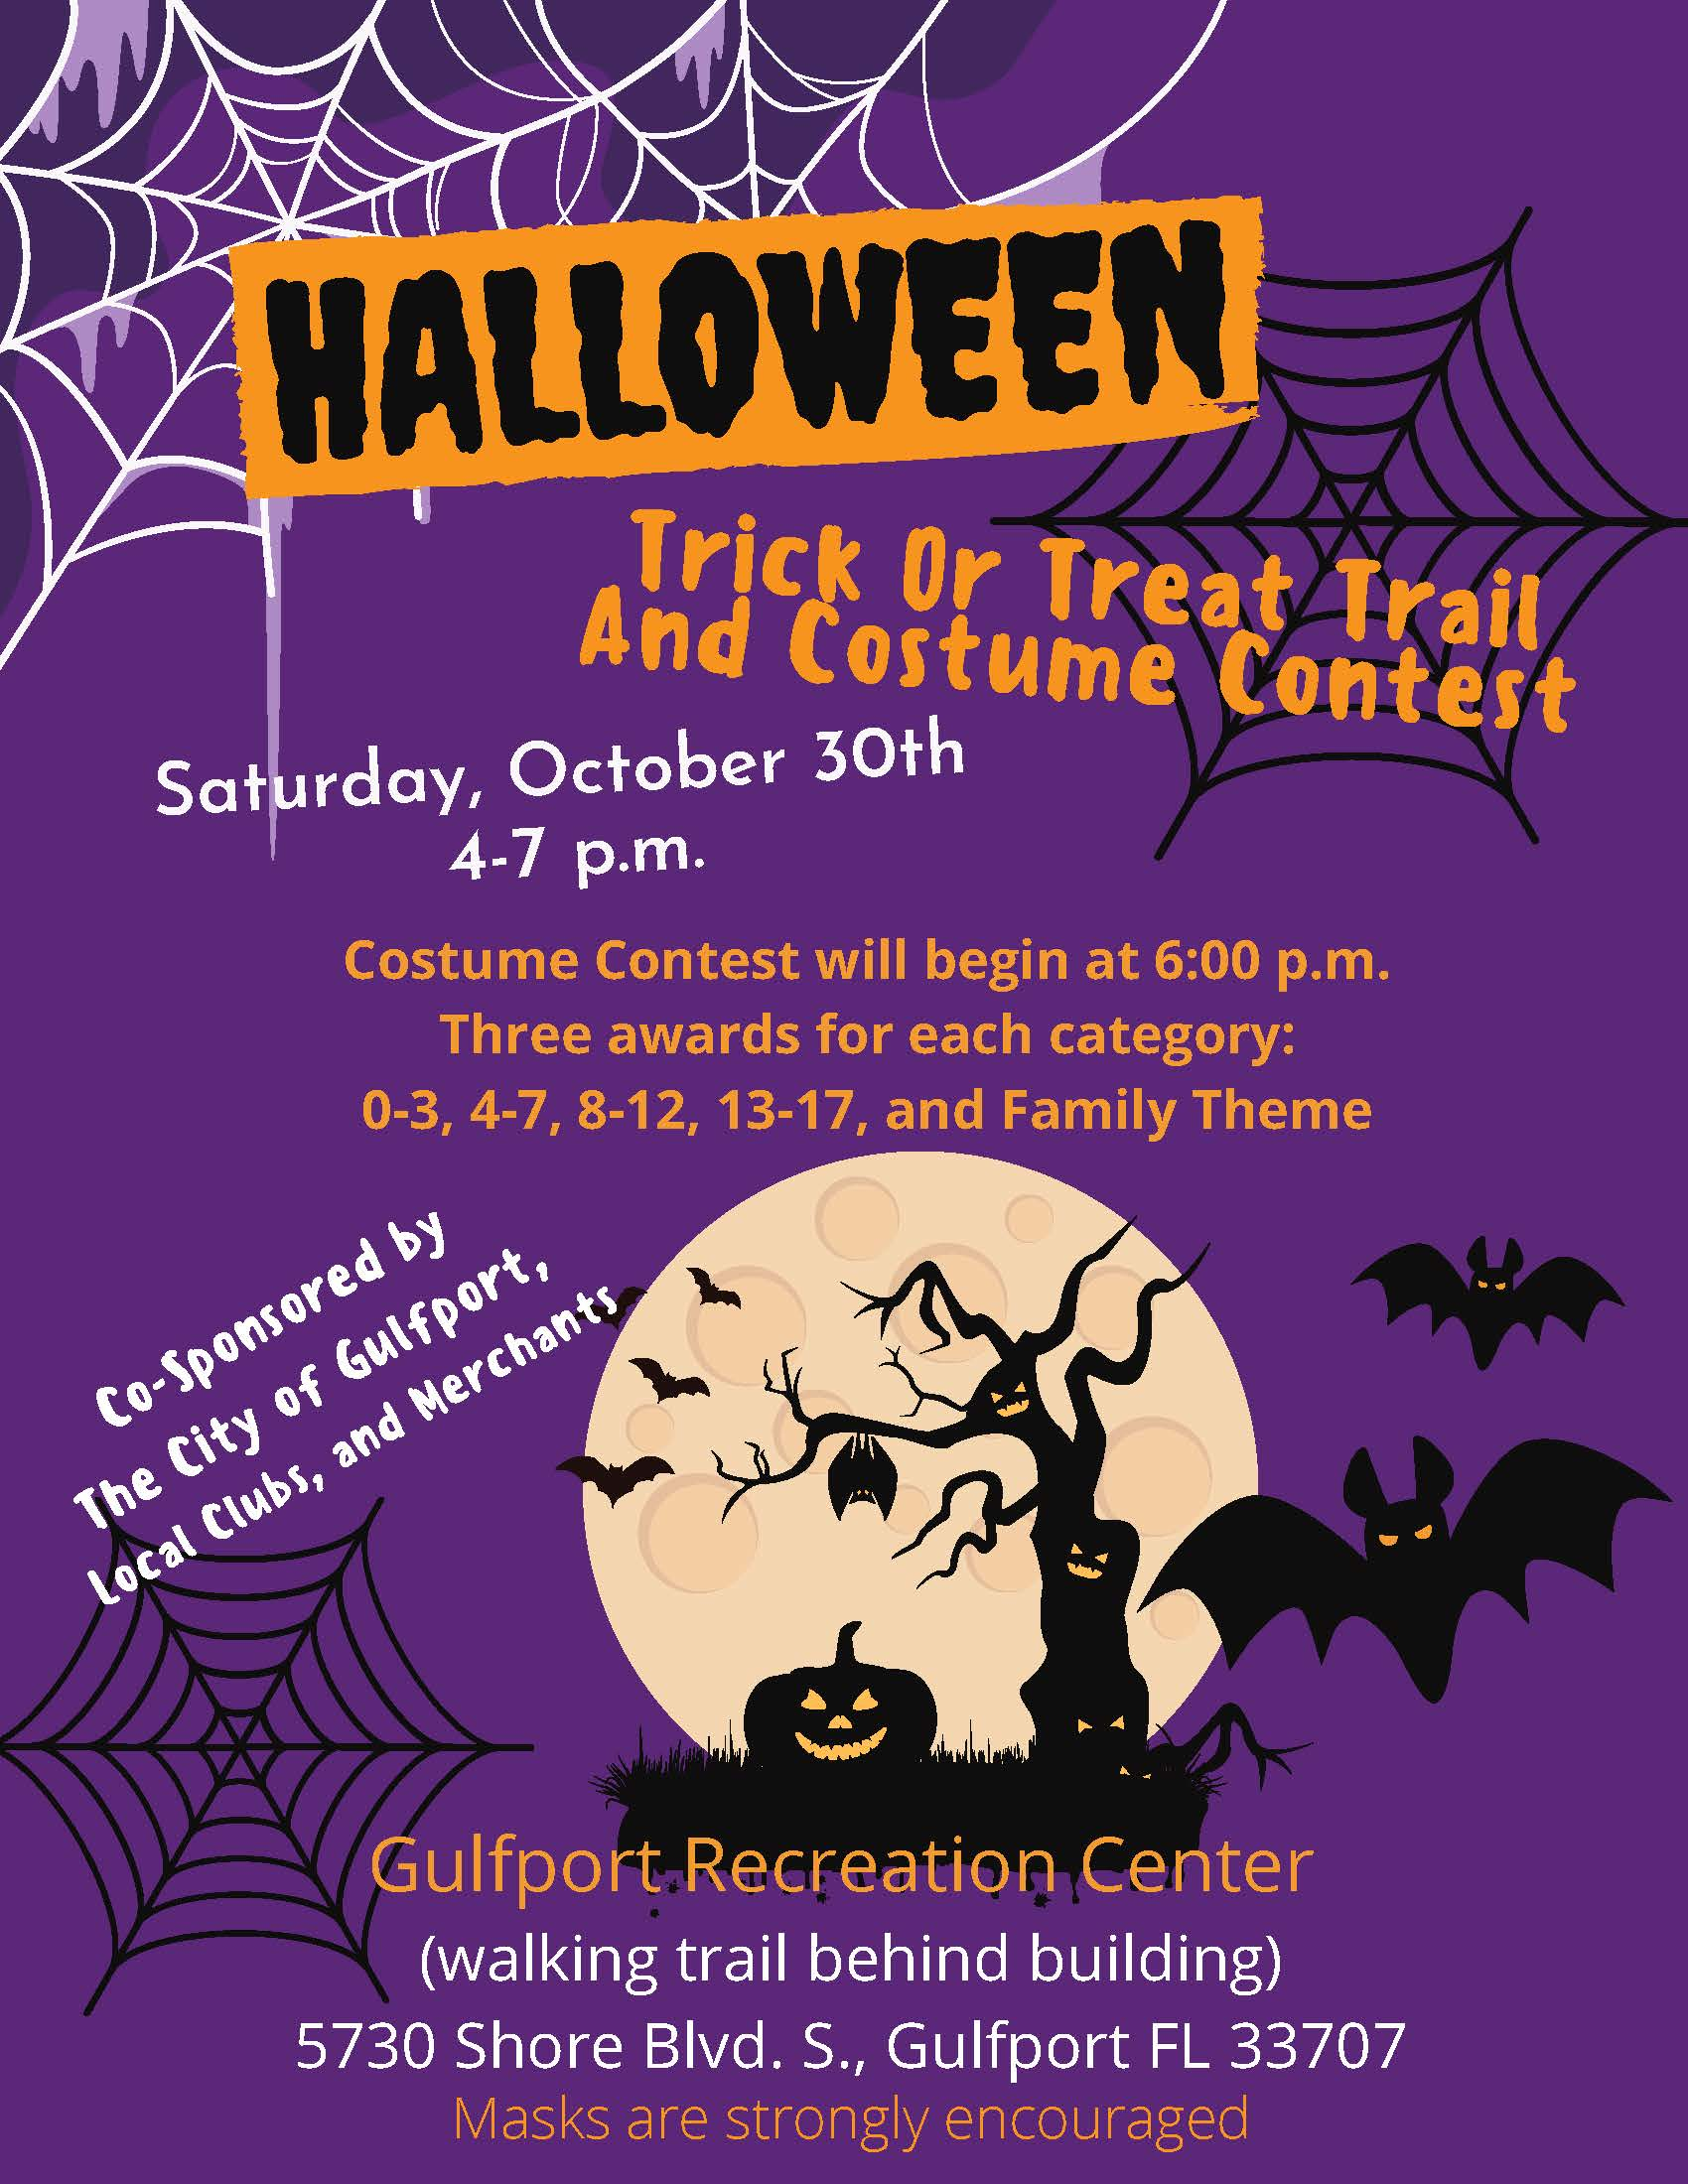 Halloween Trick or Treat Trail & Costume Contest